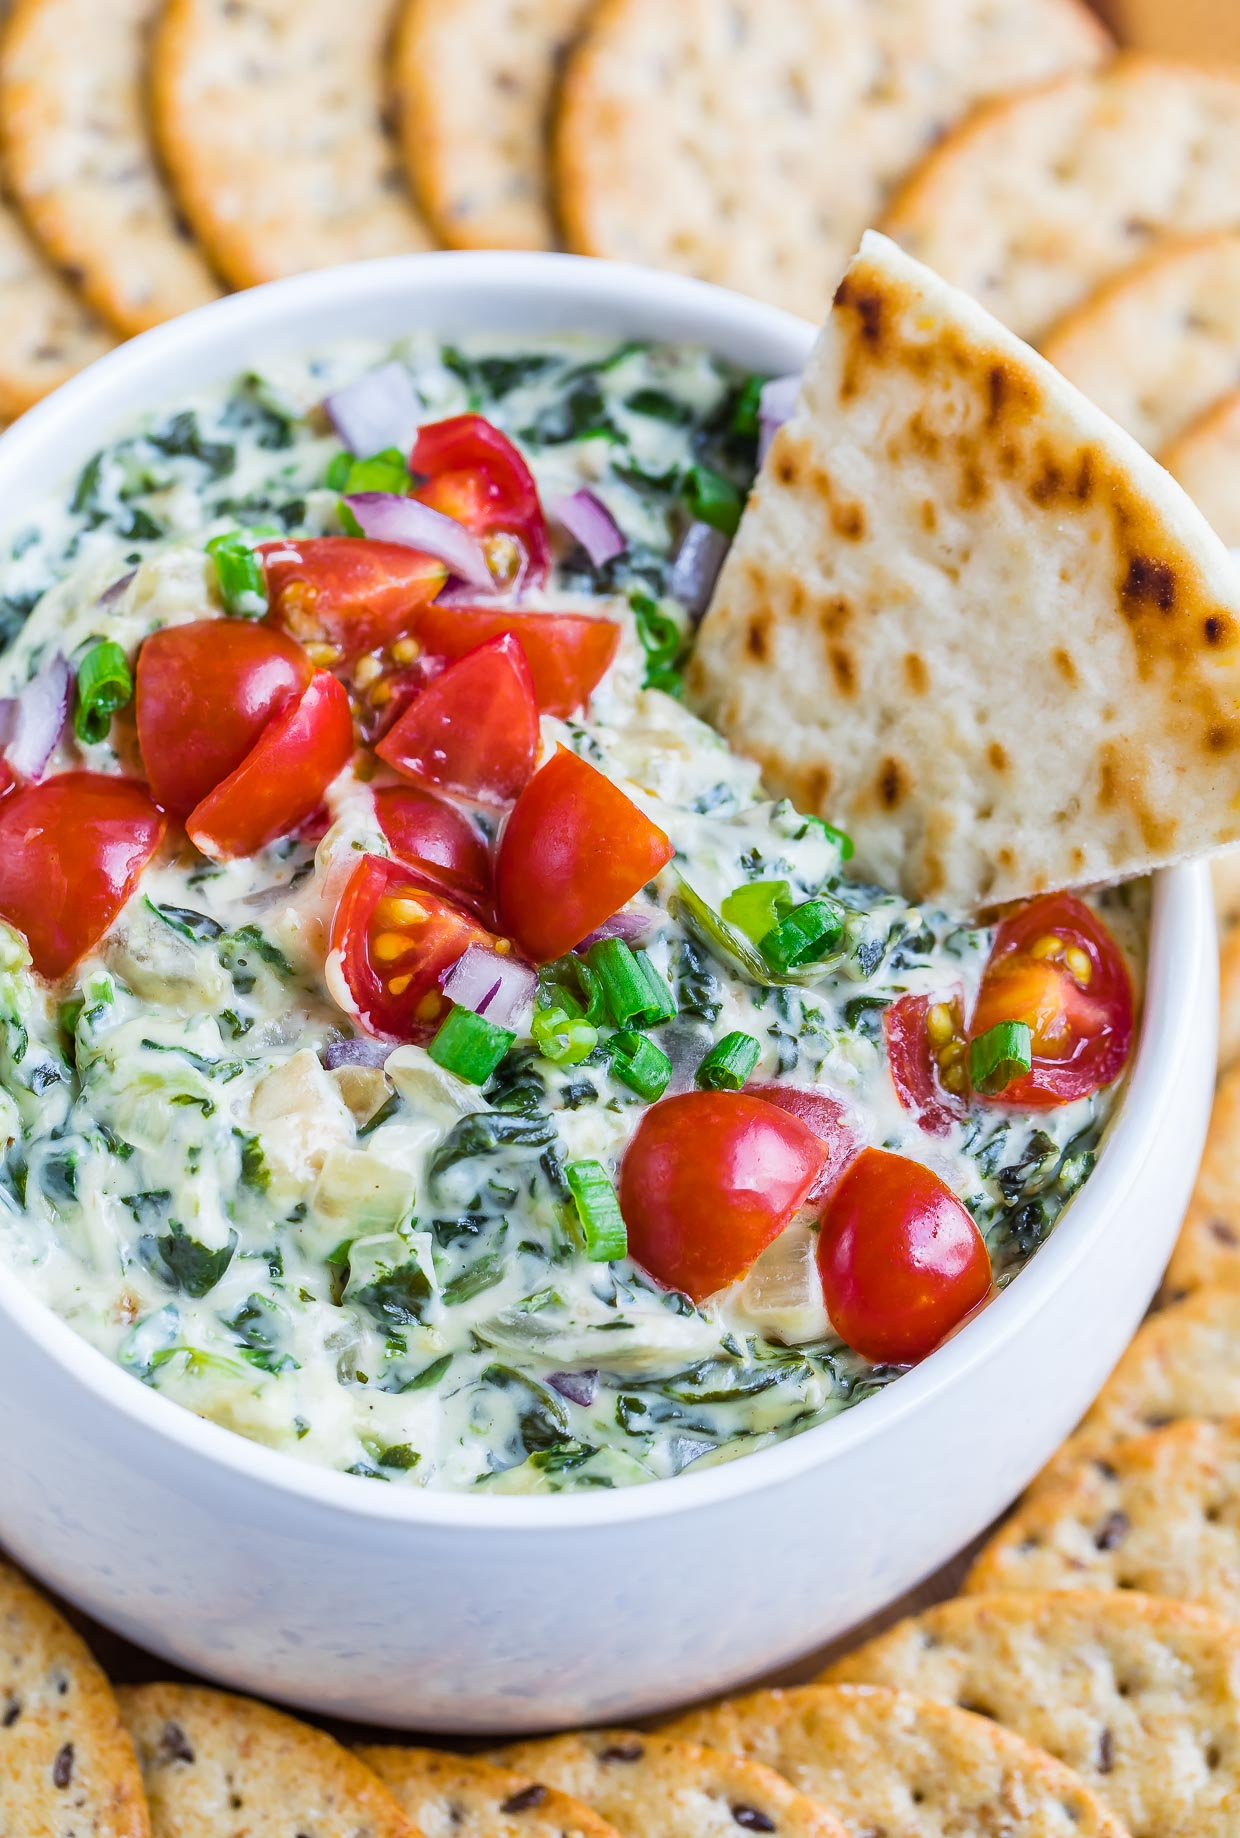 Hot Spinach Artichoke Dip Recipe Peas And Crayons